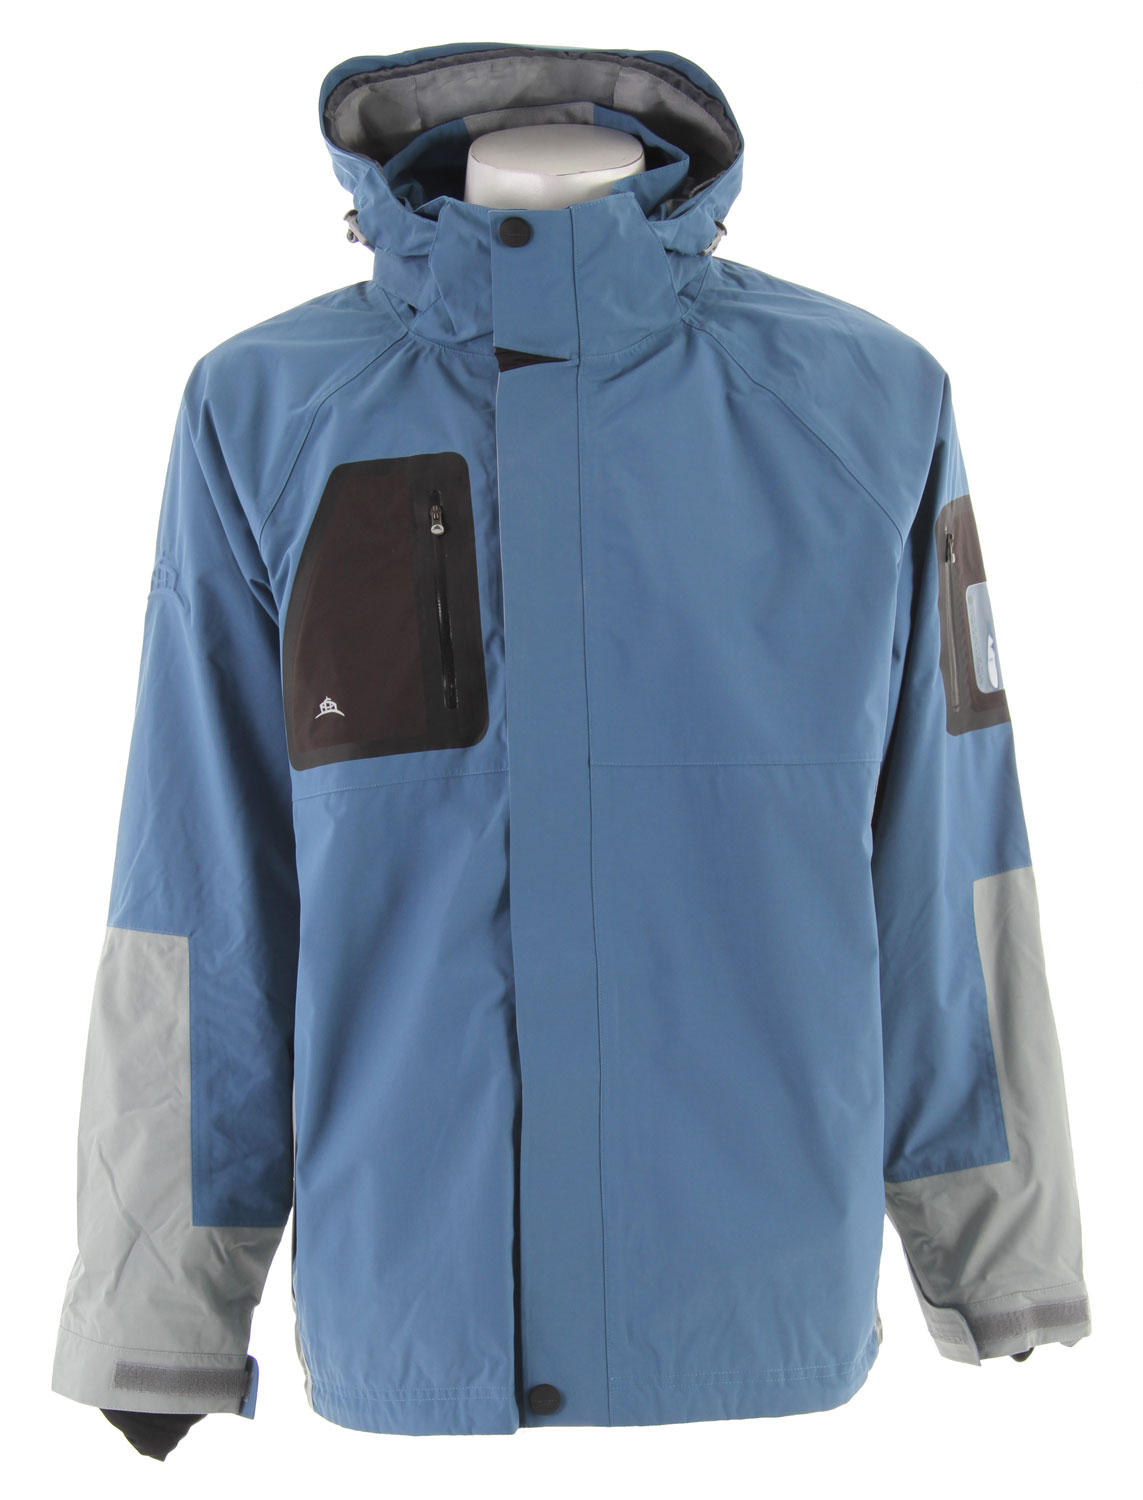 Entertainment For extreme performance, the Triton h2xtreme Shell comes fully loaded with a waterproof/breathable outshell, sealed seams, and ultimate mobility. This jacket is ready for making some serious turns at the mountain.Key Features for the Stormtech Triton h2xtreme Shell Jacket: 10,000mm waterproof 5,000g/m2 breathability Extreme Performance, Fully Seam-Sealed, Waterproof/Breathable Outer Shell Laser-Cut and Bonded Chest & Bicep Pockets with Waterproof Zippers Laminated Front Placket, Cuff Tabs & Hood Brim Transparent ID Pass-Pocket on Left Bicep Detachable, Adjustable, Hood Napoleon Pocket with Audio Port Extra Long Pit-Zips with Snow-Guard Mesh Adjustable Single-Hand Drawcords - $89.95